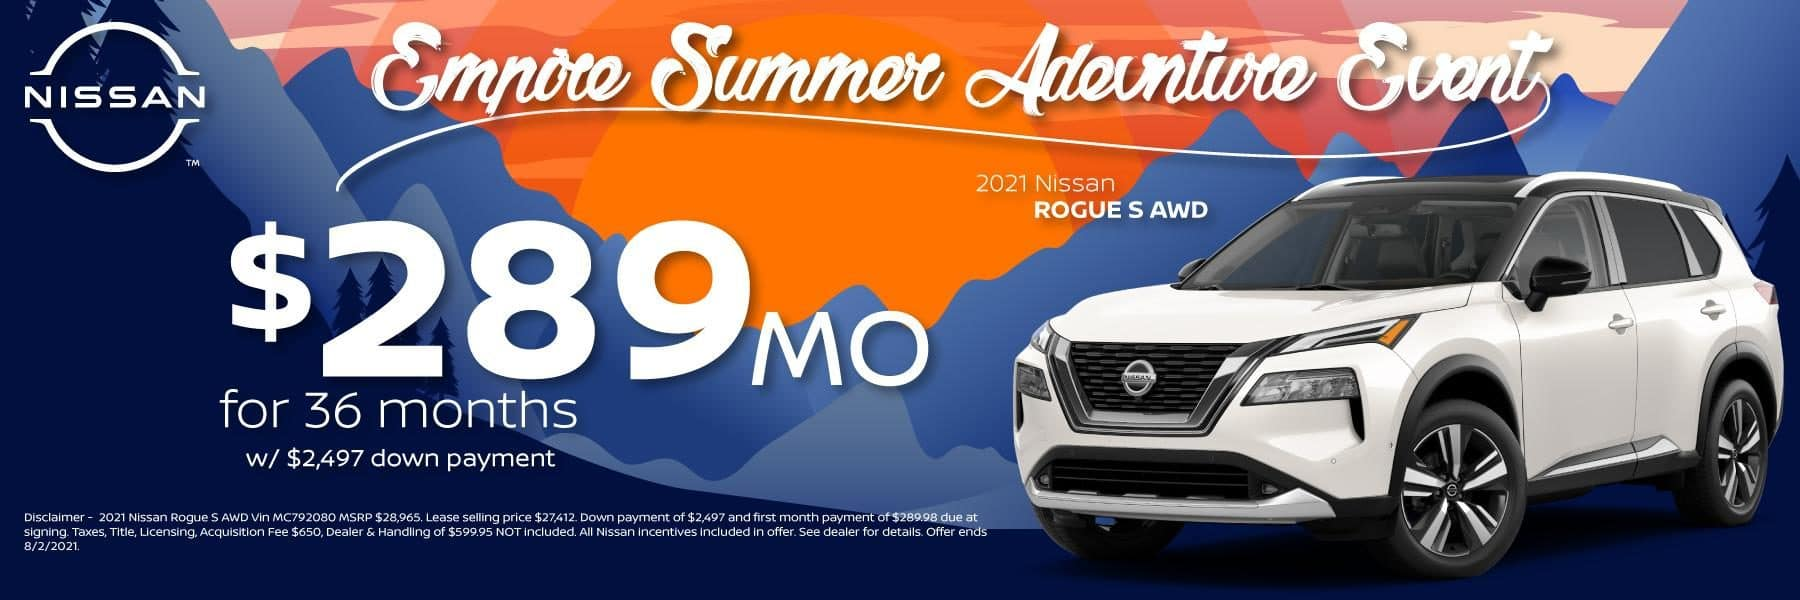 Best new 2021 Nissan Rogue Lease and Purchase Specials in Denver and Littleton, CO